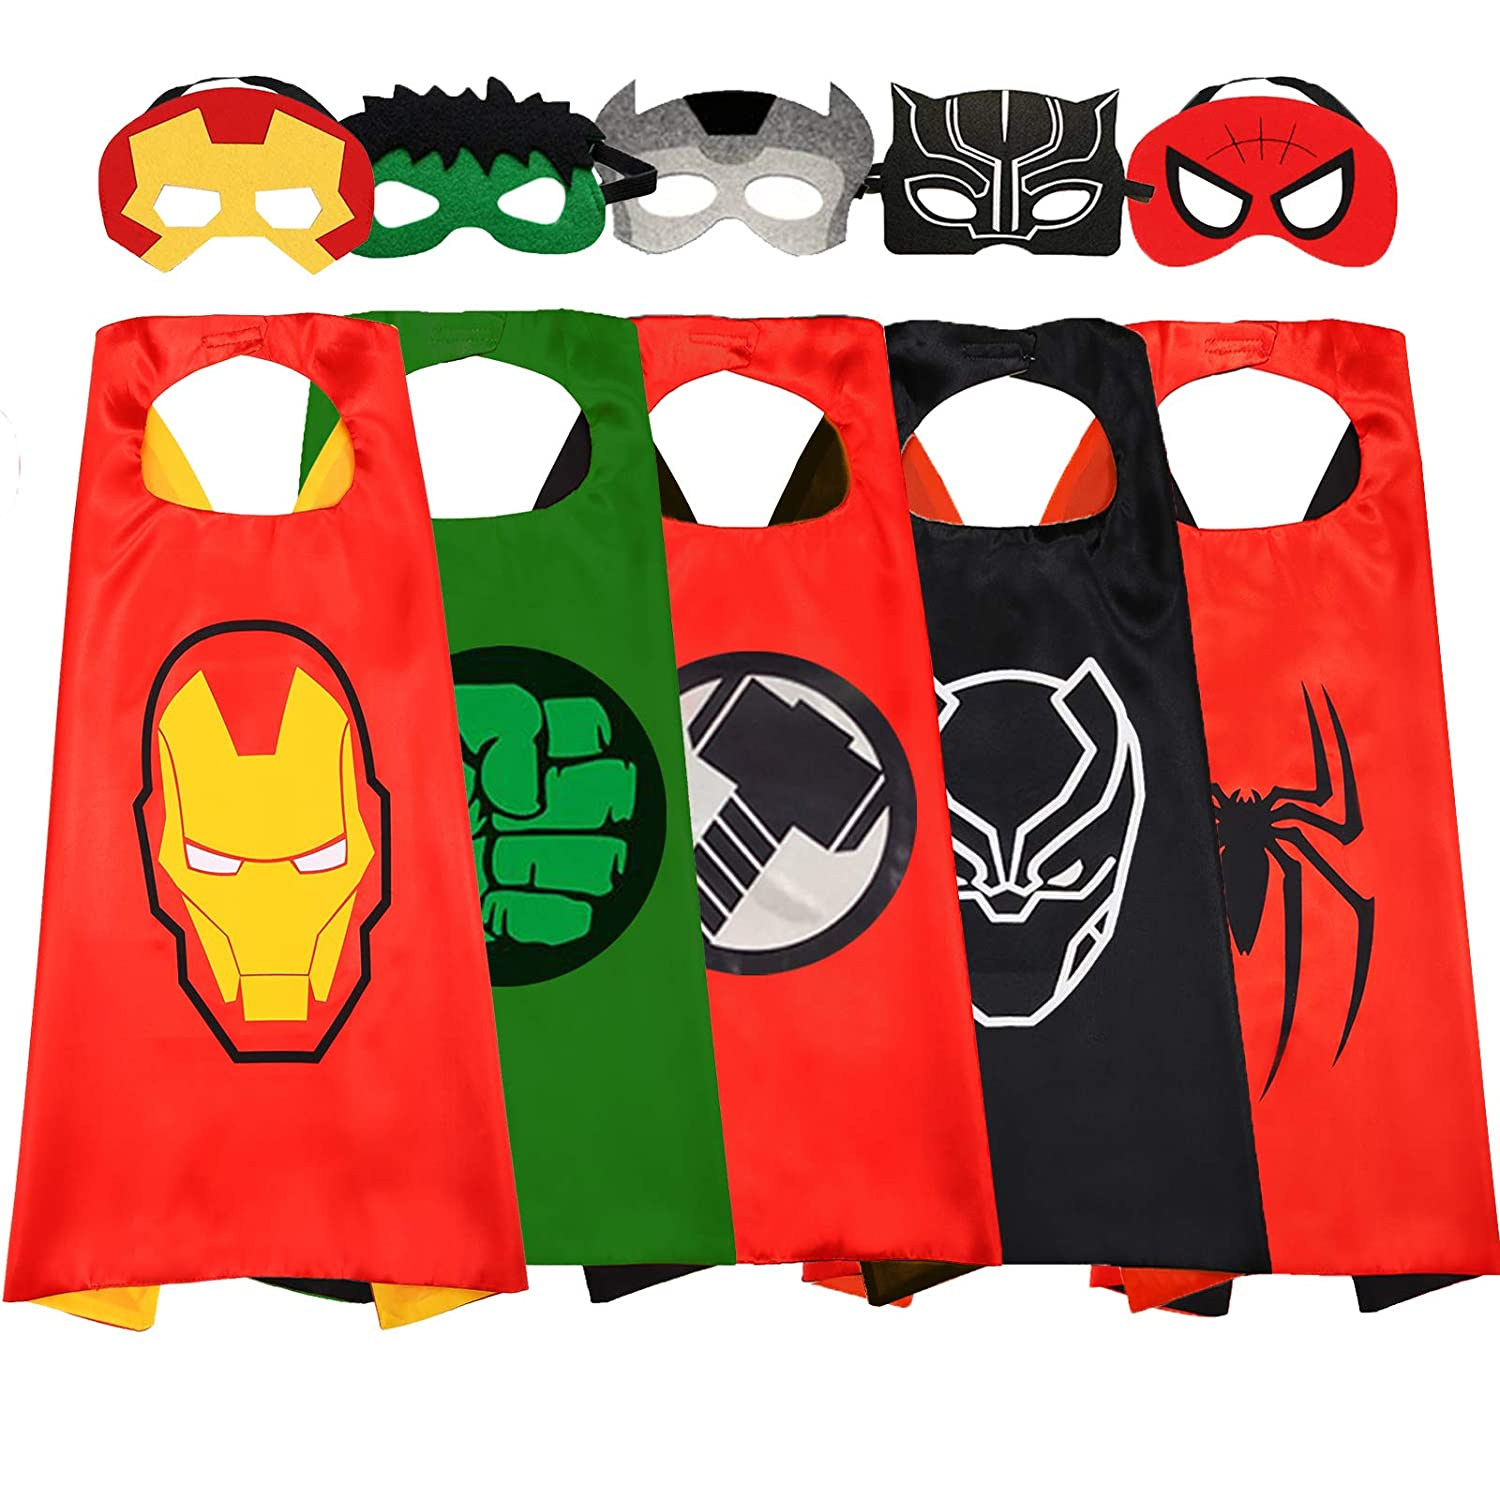 Superhero Cape and Mask for Kids Superhero Toys for 3-10 Year Old Boys Superhero Costumes Avengers Dress up Kids Best Gifts